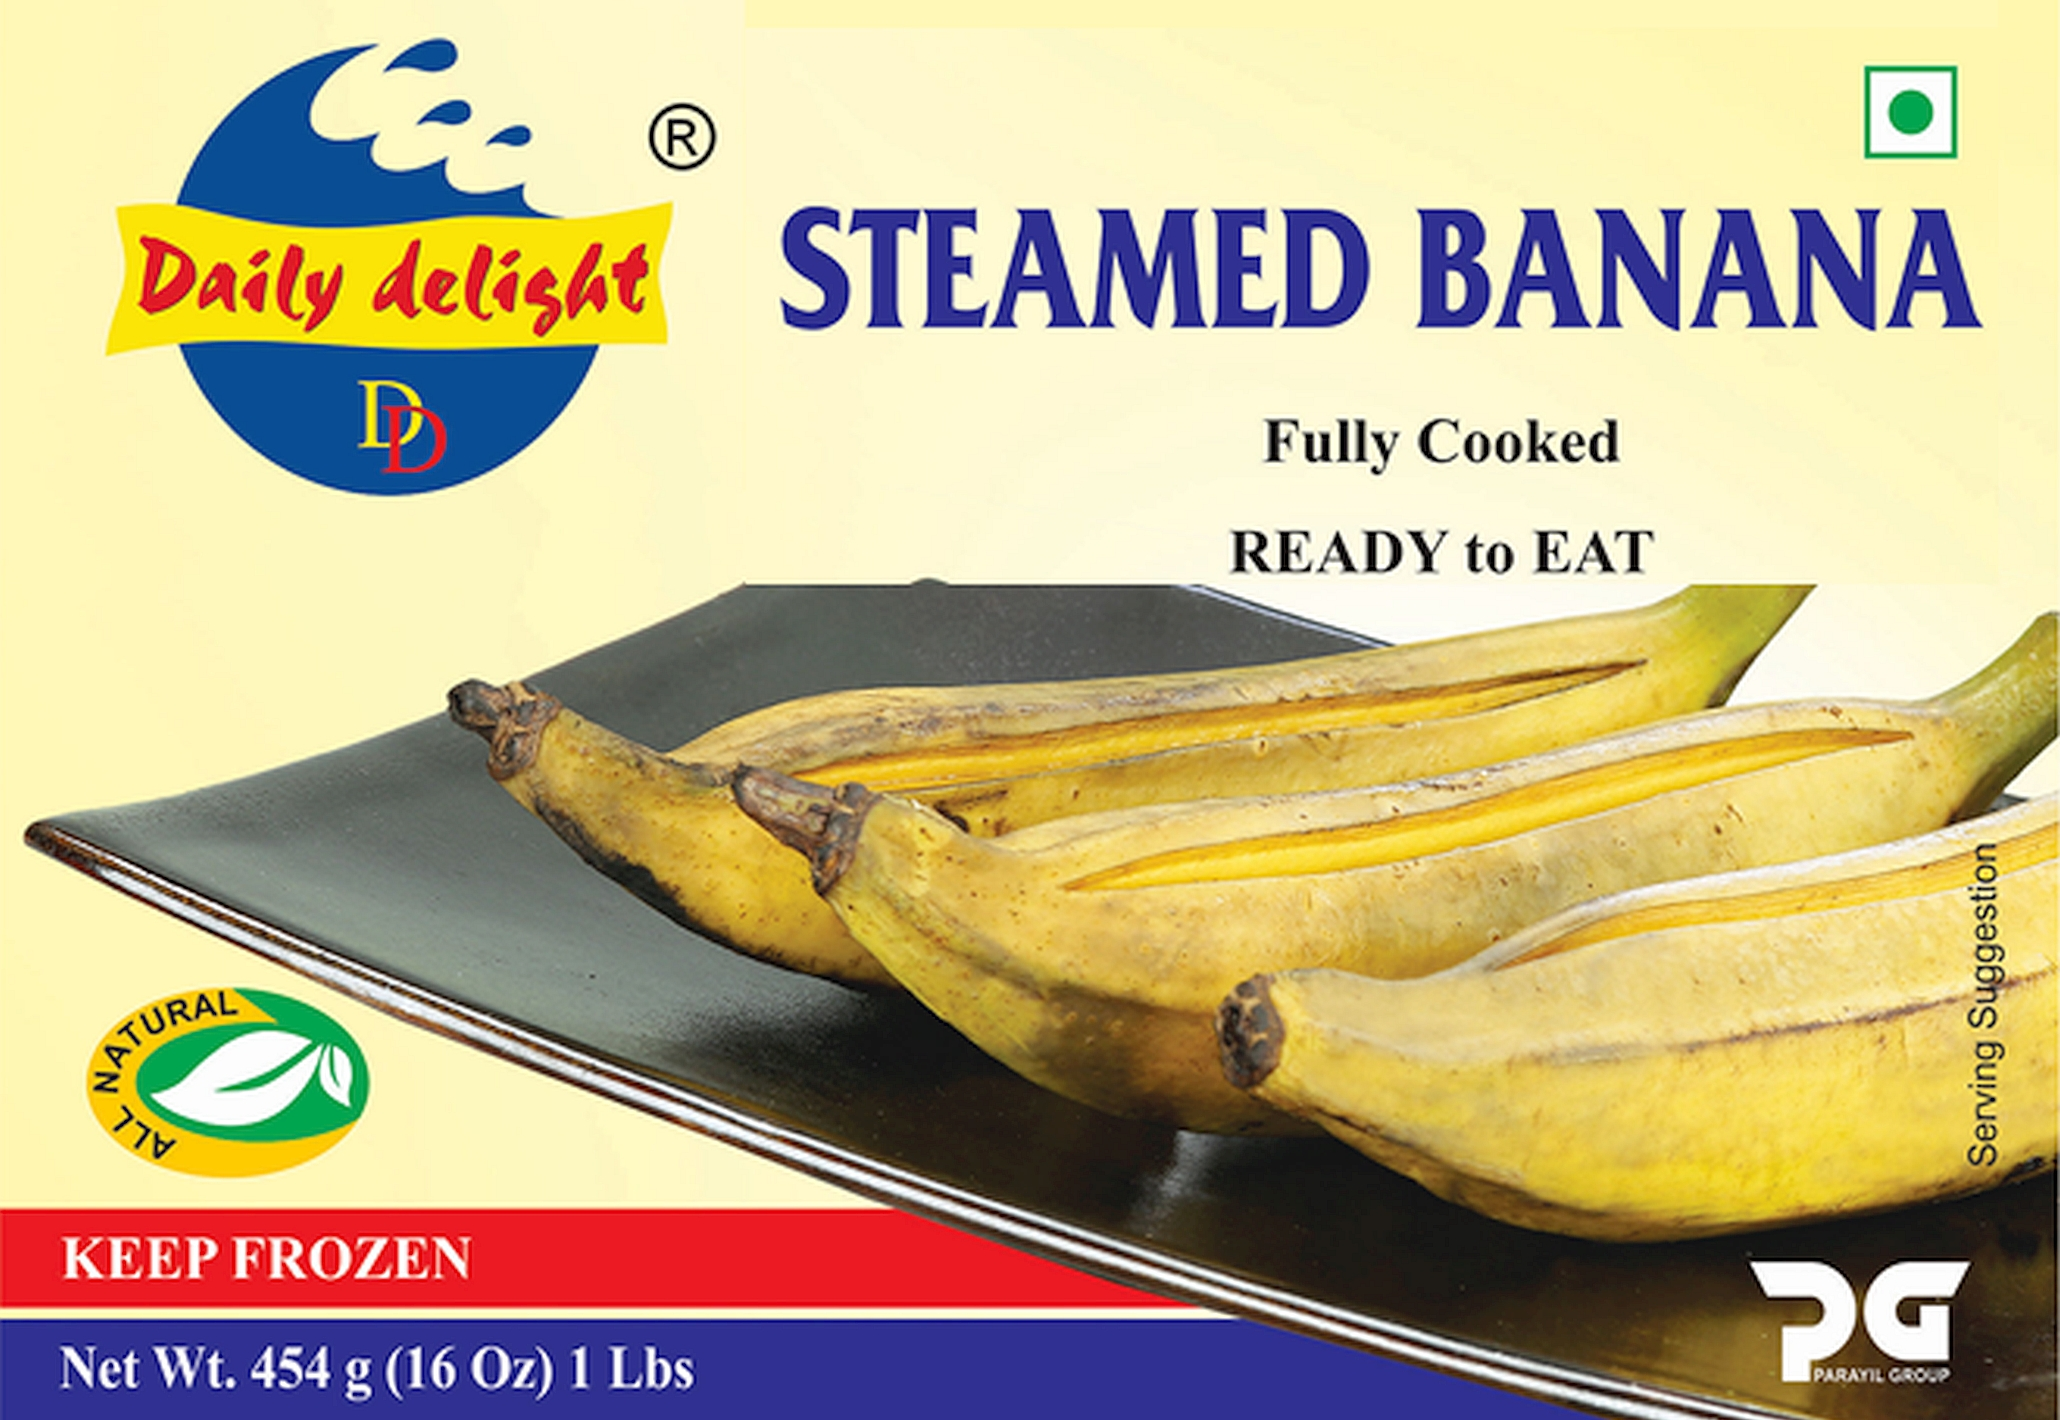 Daily Delight Steamed Banana